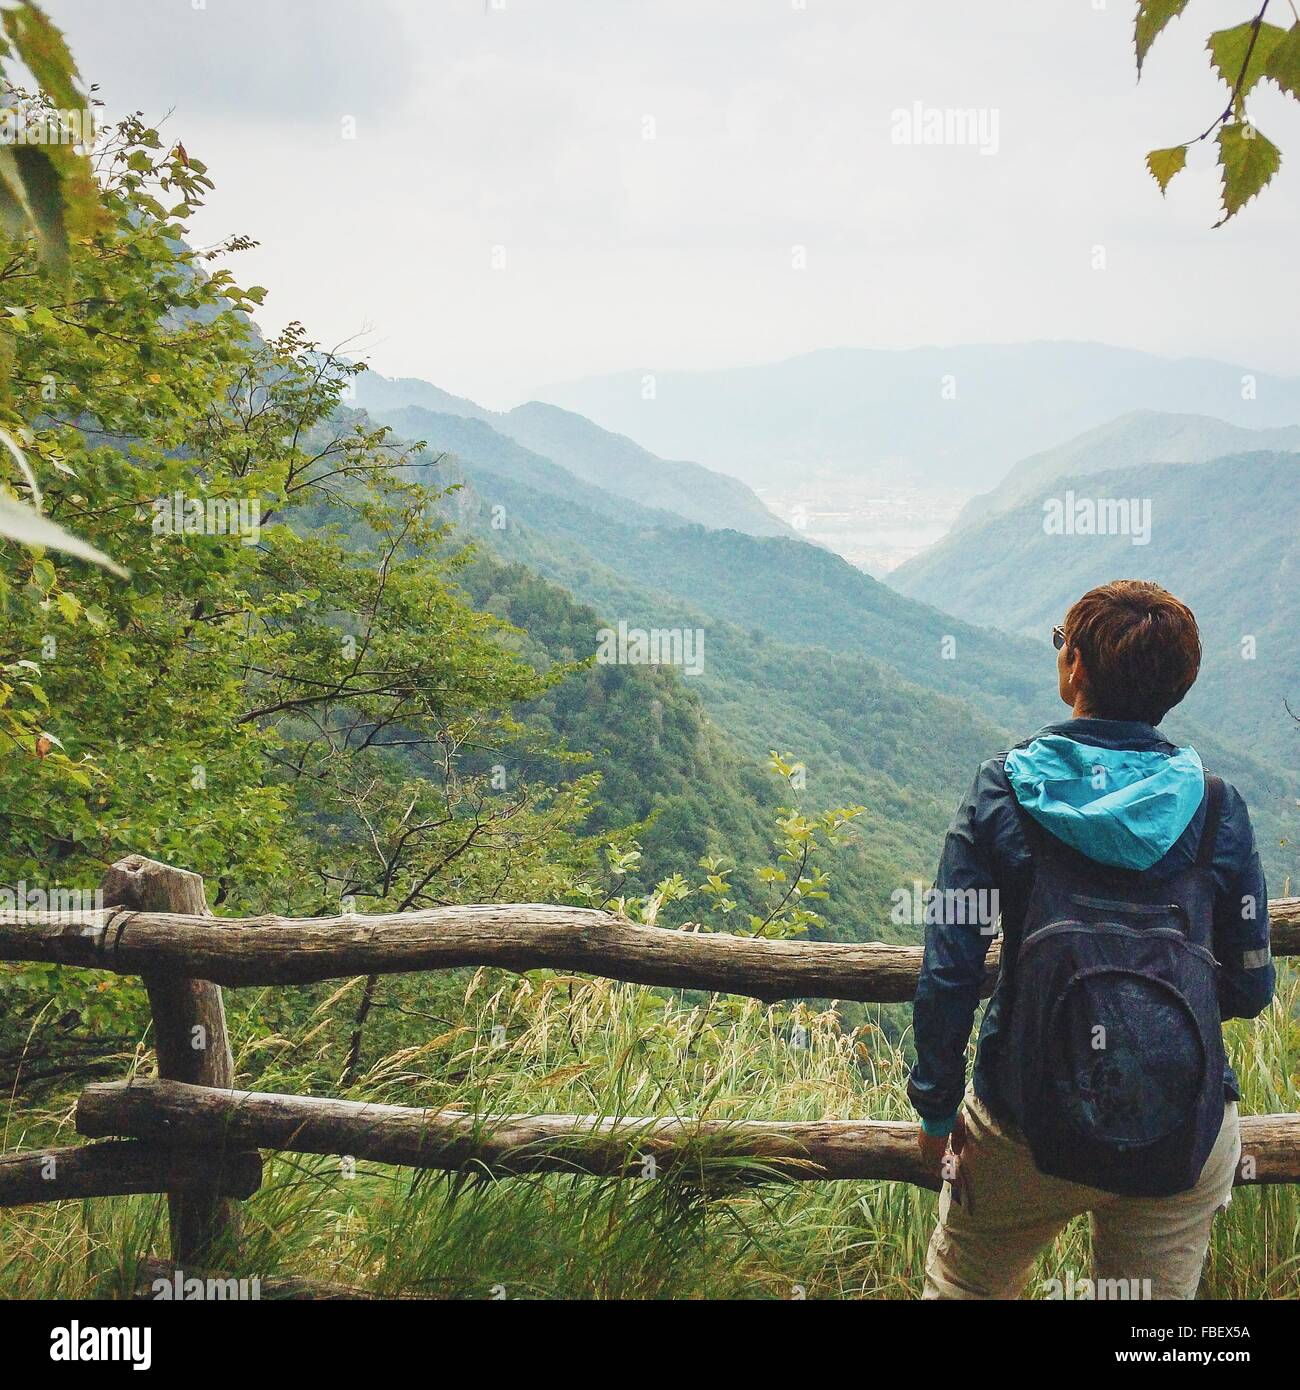 Rear View Of Man With Backpack Standing Against Mountains - Stock Image